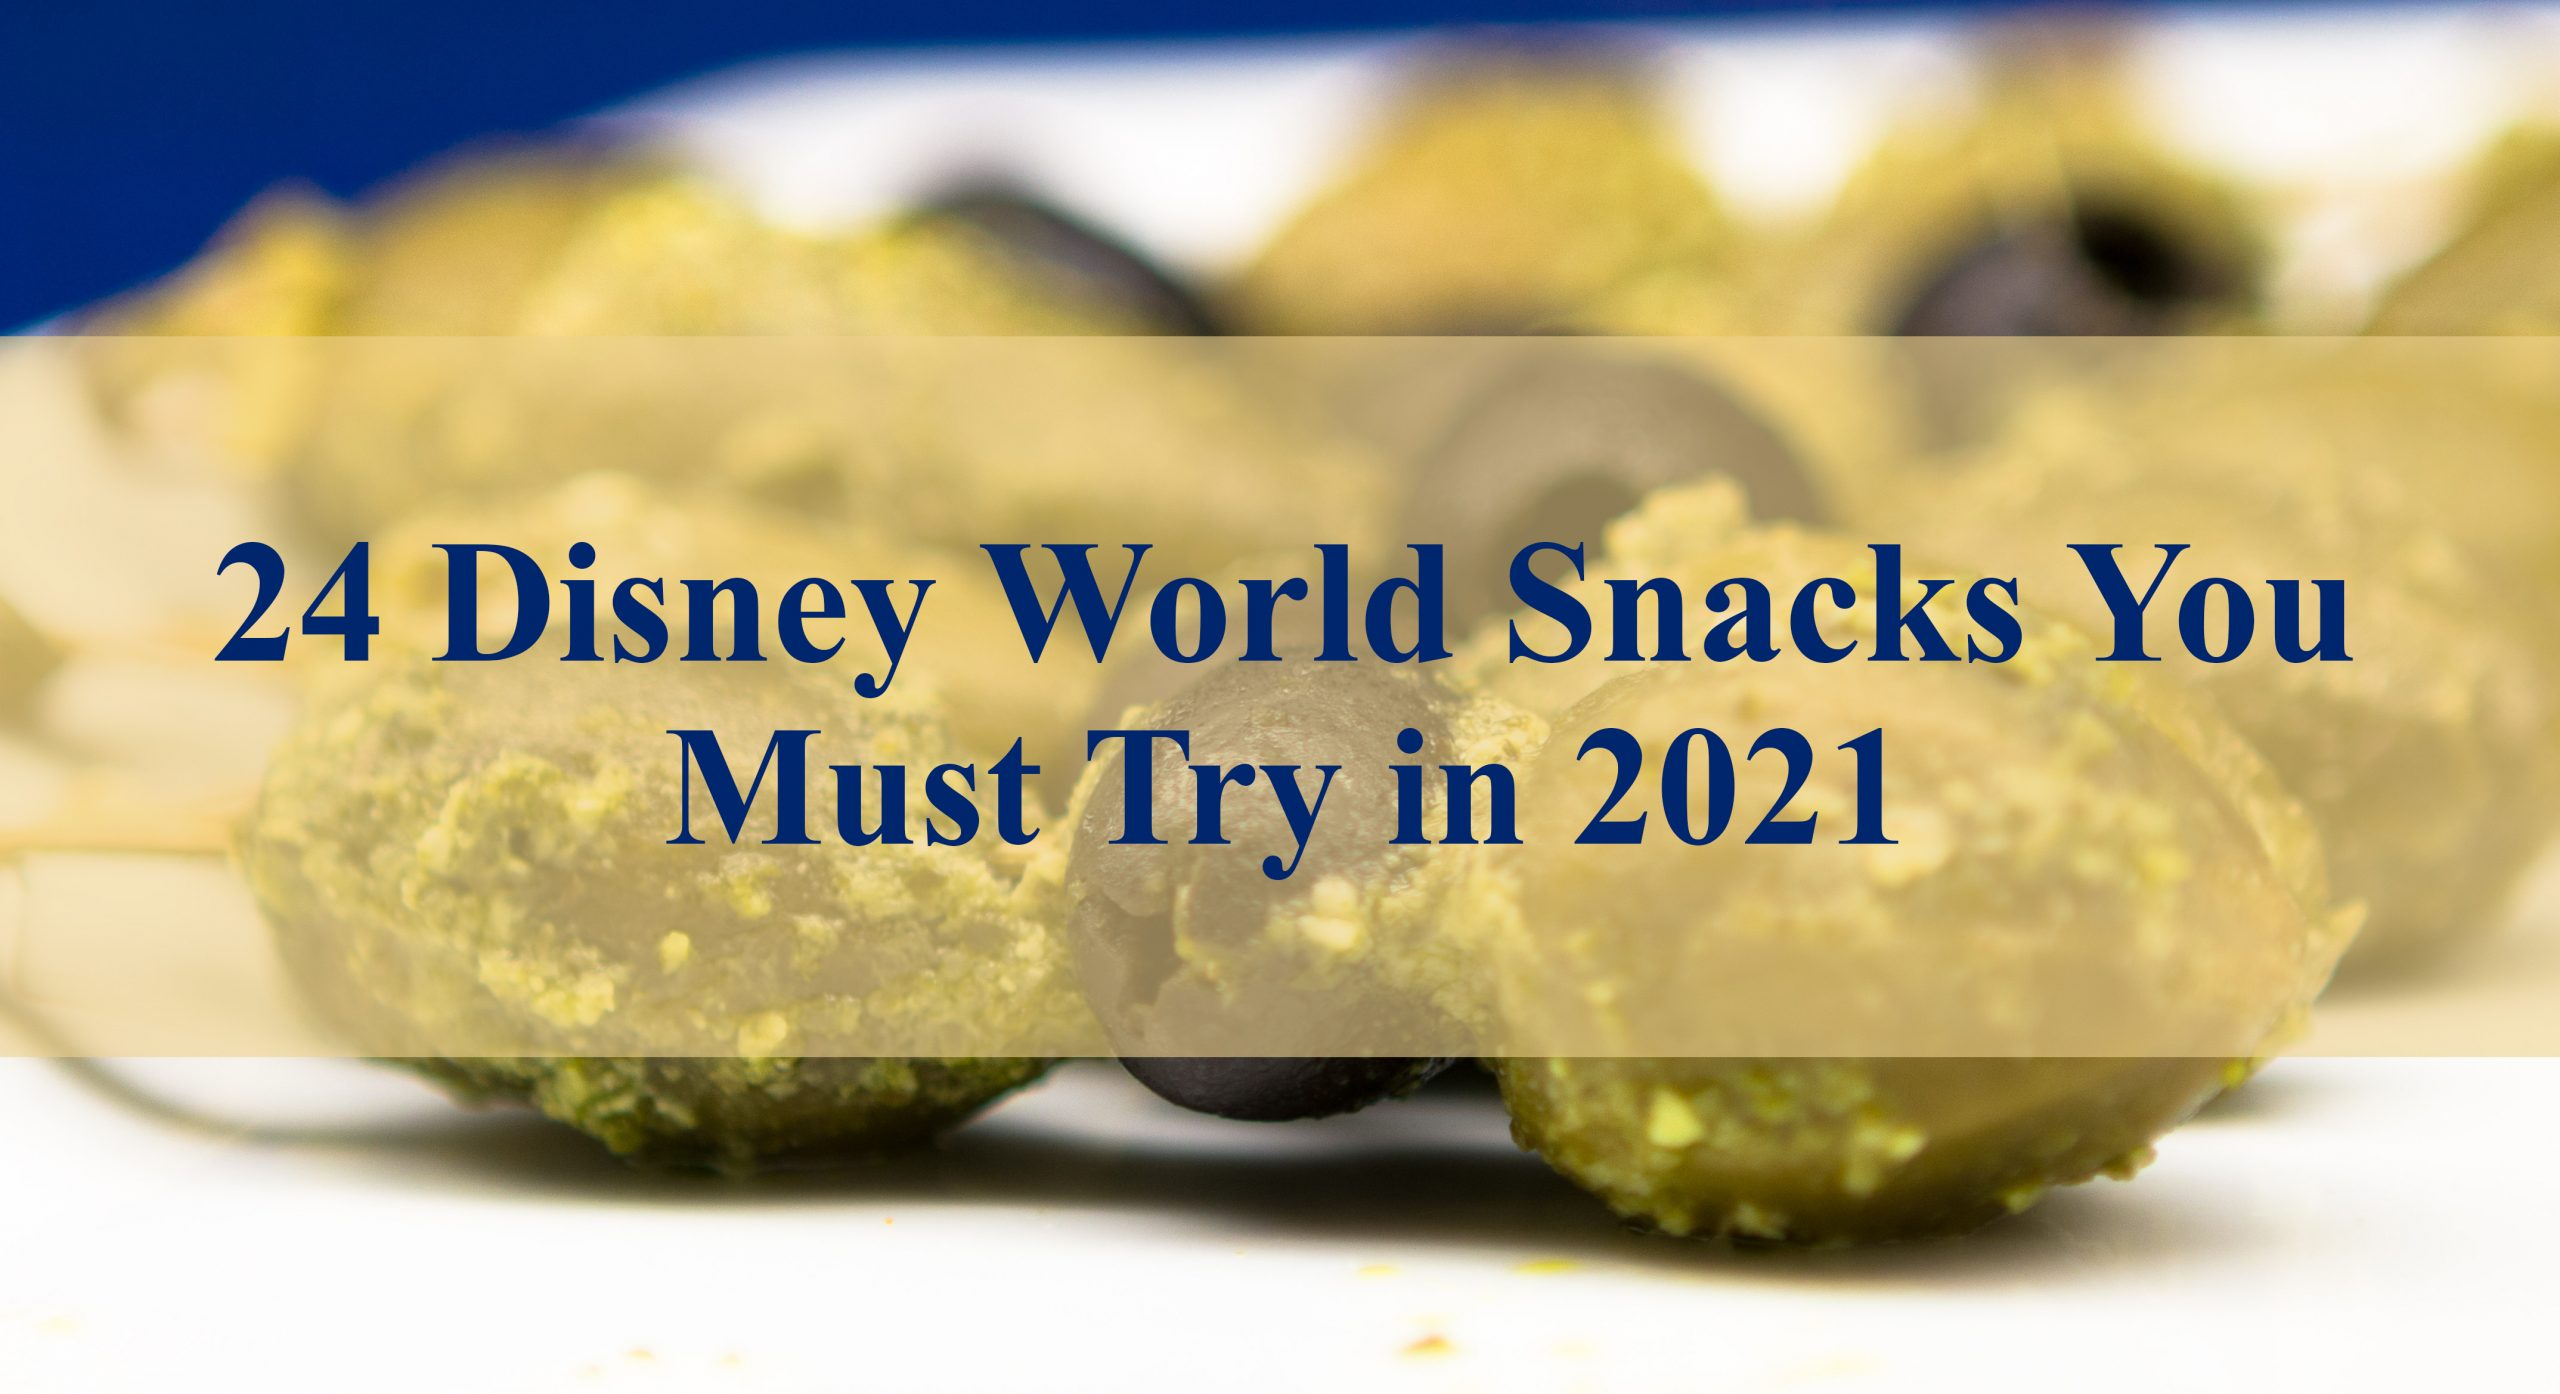 Disney World Snacks 2021